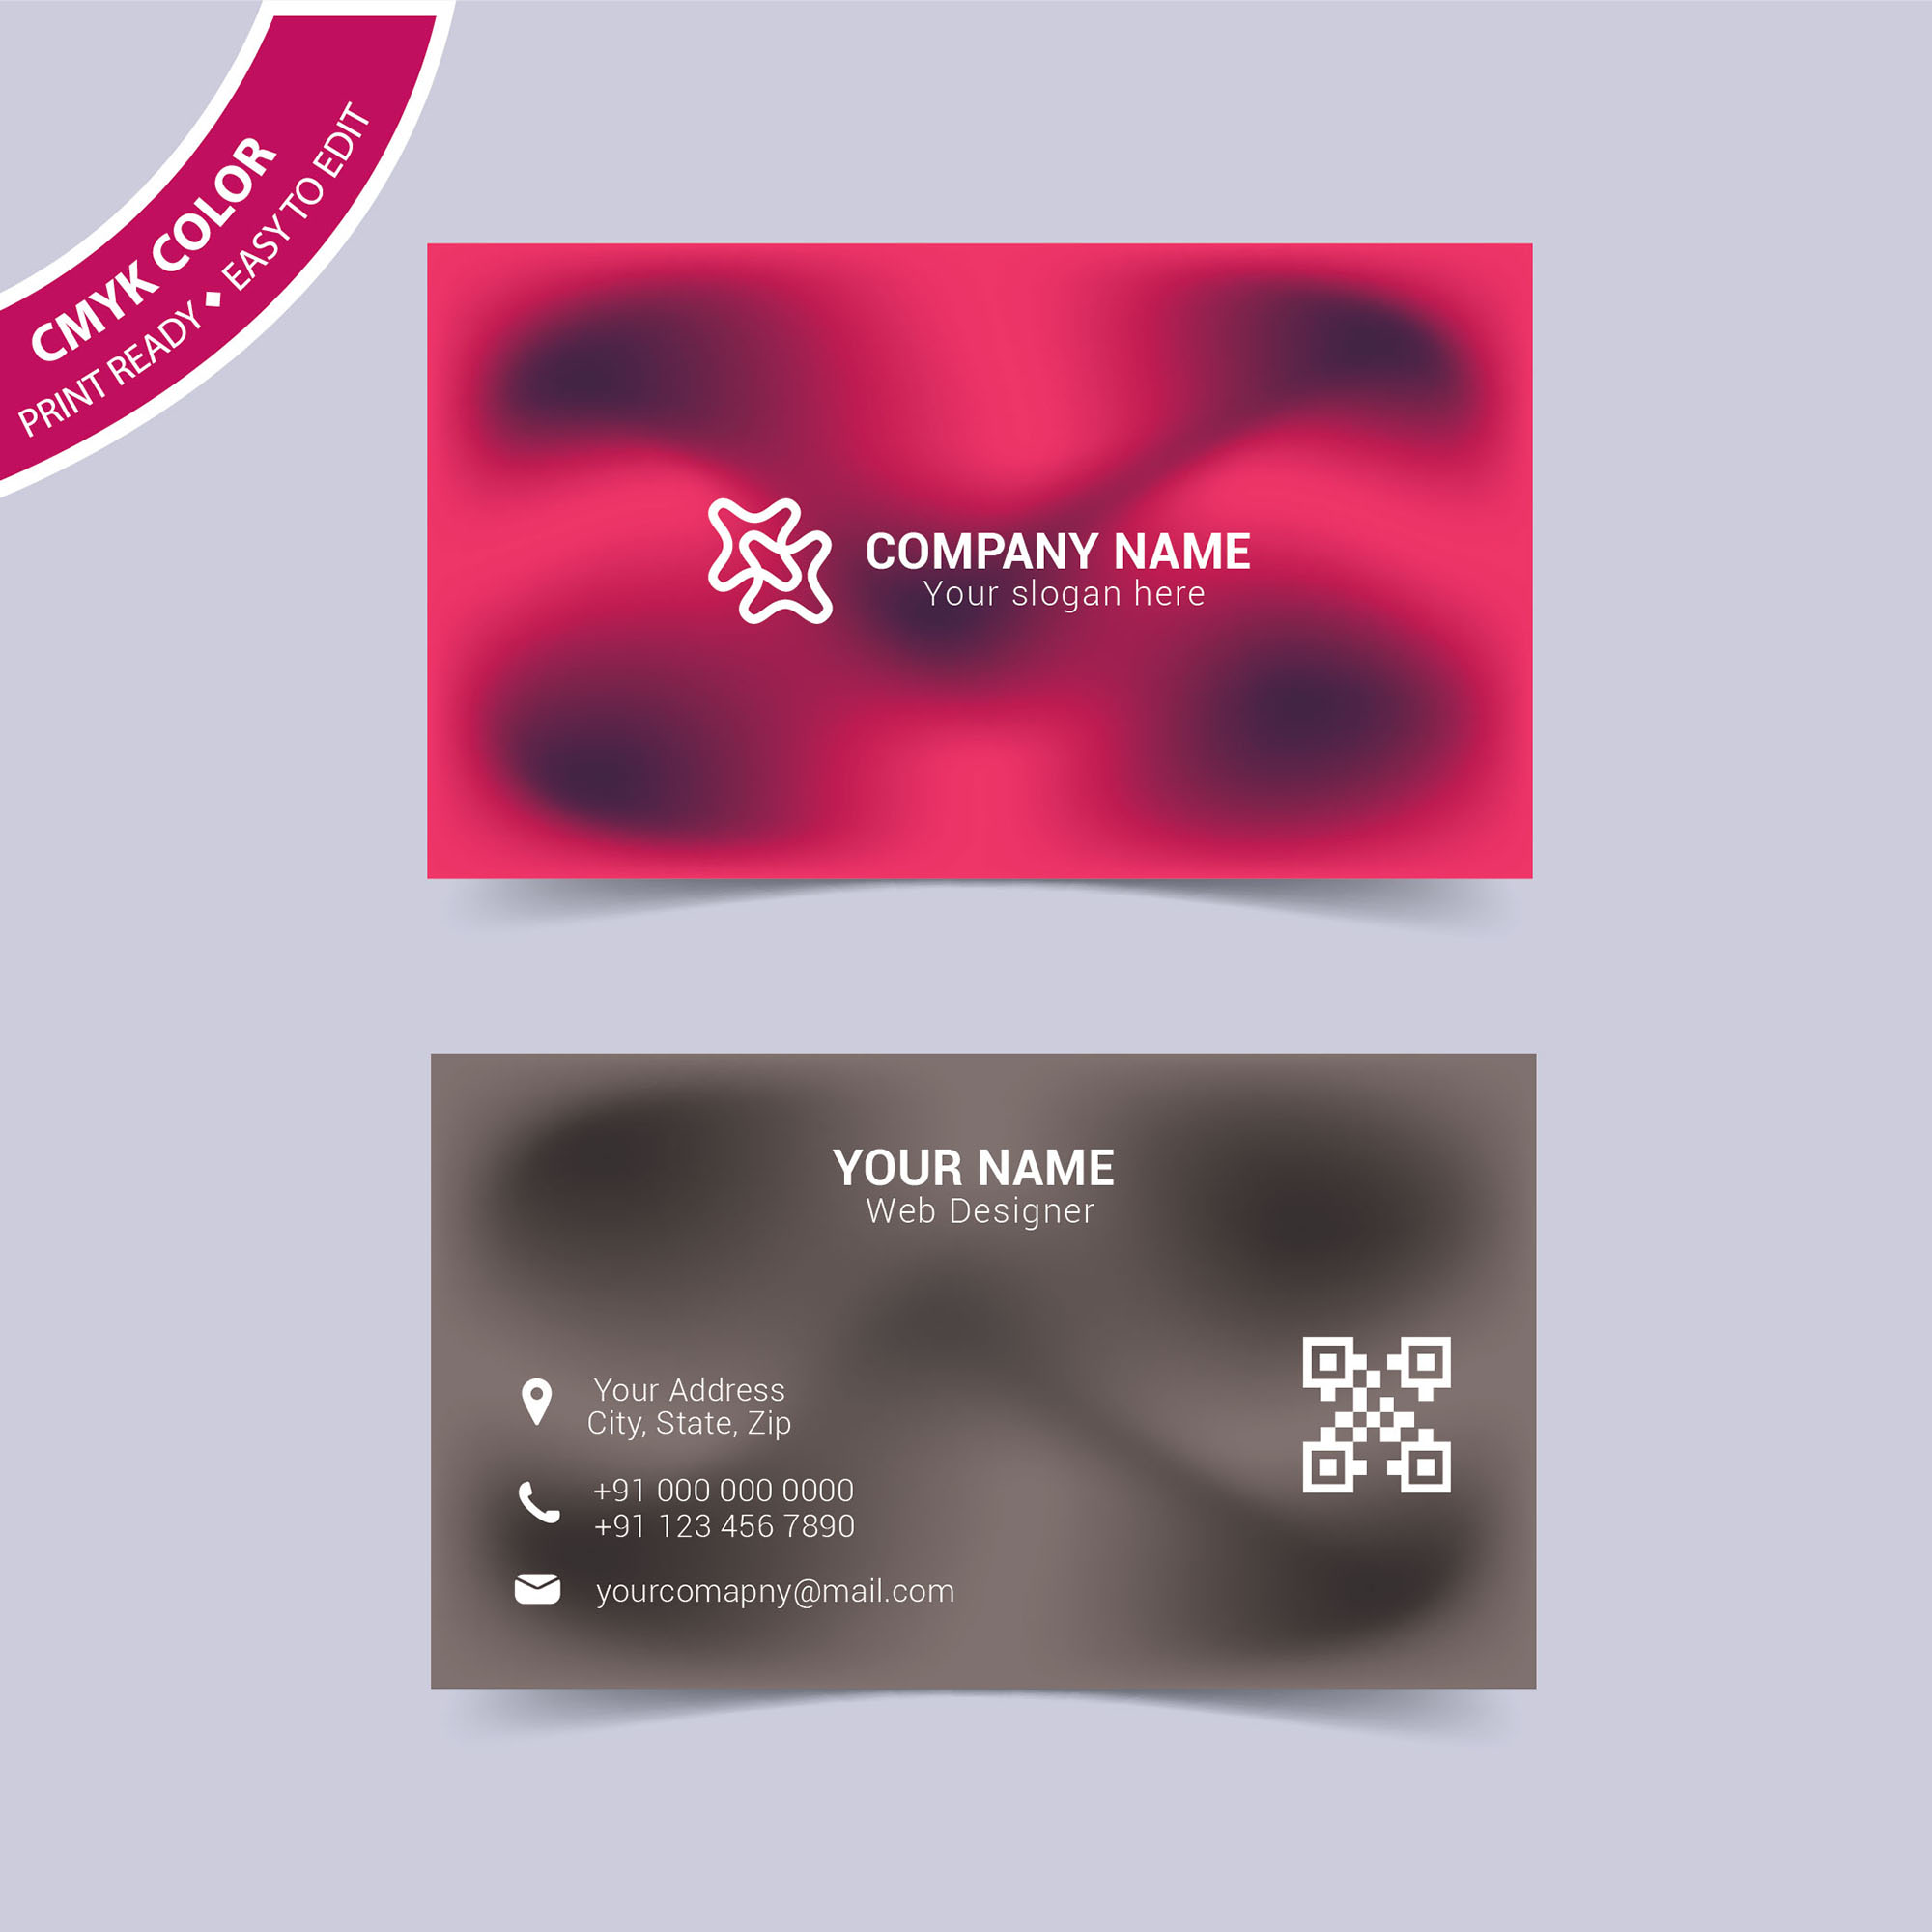 Modern abstract business card free download wisxi business card business cards business card design business card template design templates flashek Choice Image